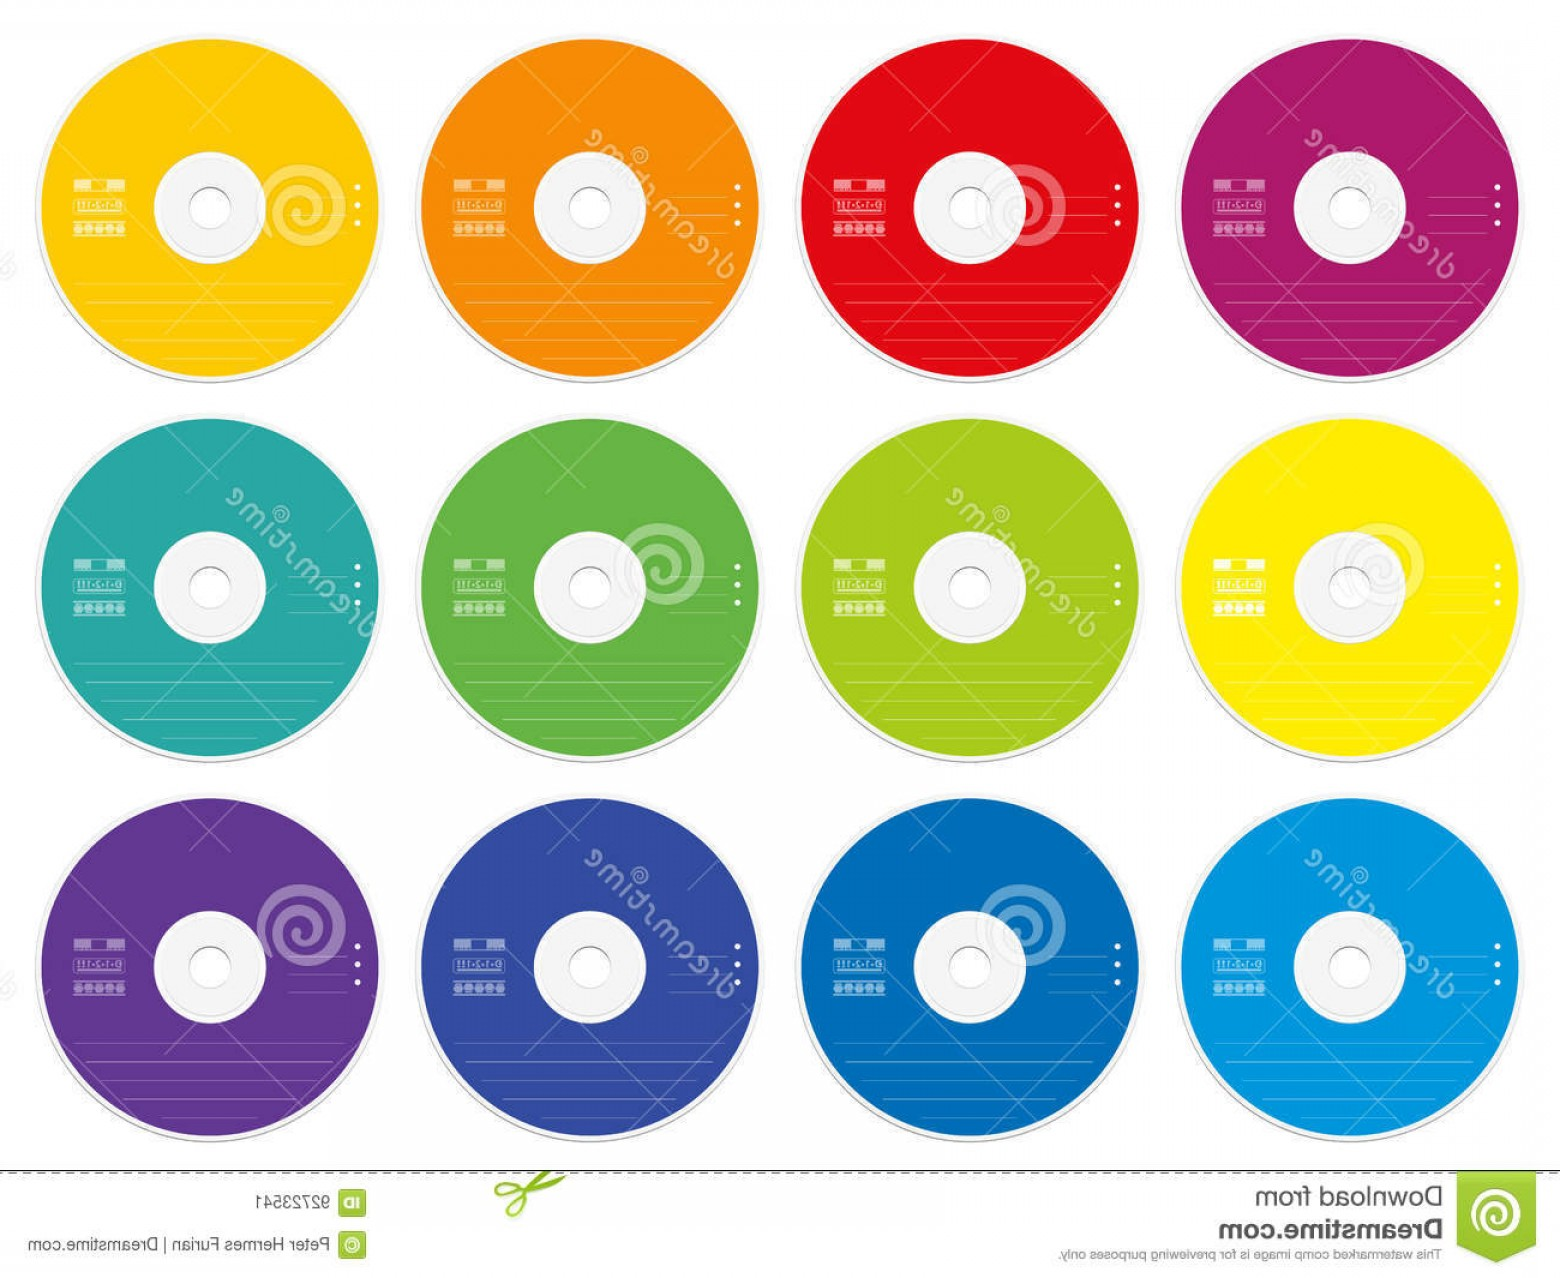 CD Label Template Vector: Stock Illustration Cd Labels Colored Template Blank Set Twelve Cds Dvds External Media Data Collection Storage Music Films Photos Image